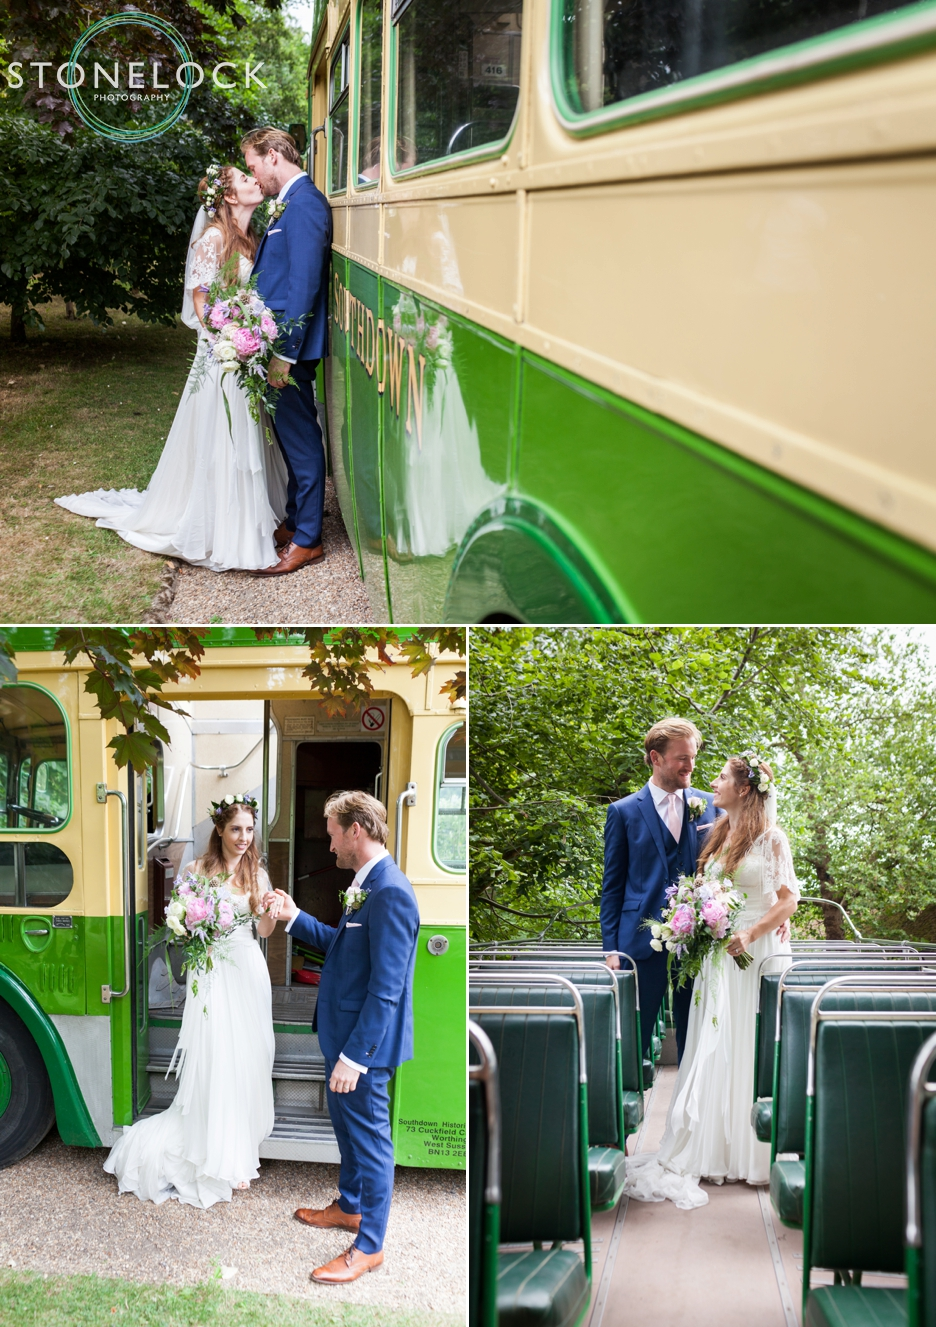 Wedding photography at Ridge Farm Studios, Dorking, Surrey, the bride & groom pose with their wedding bus!